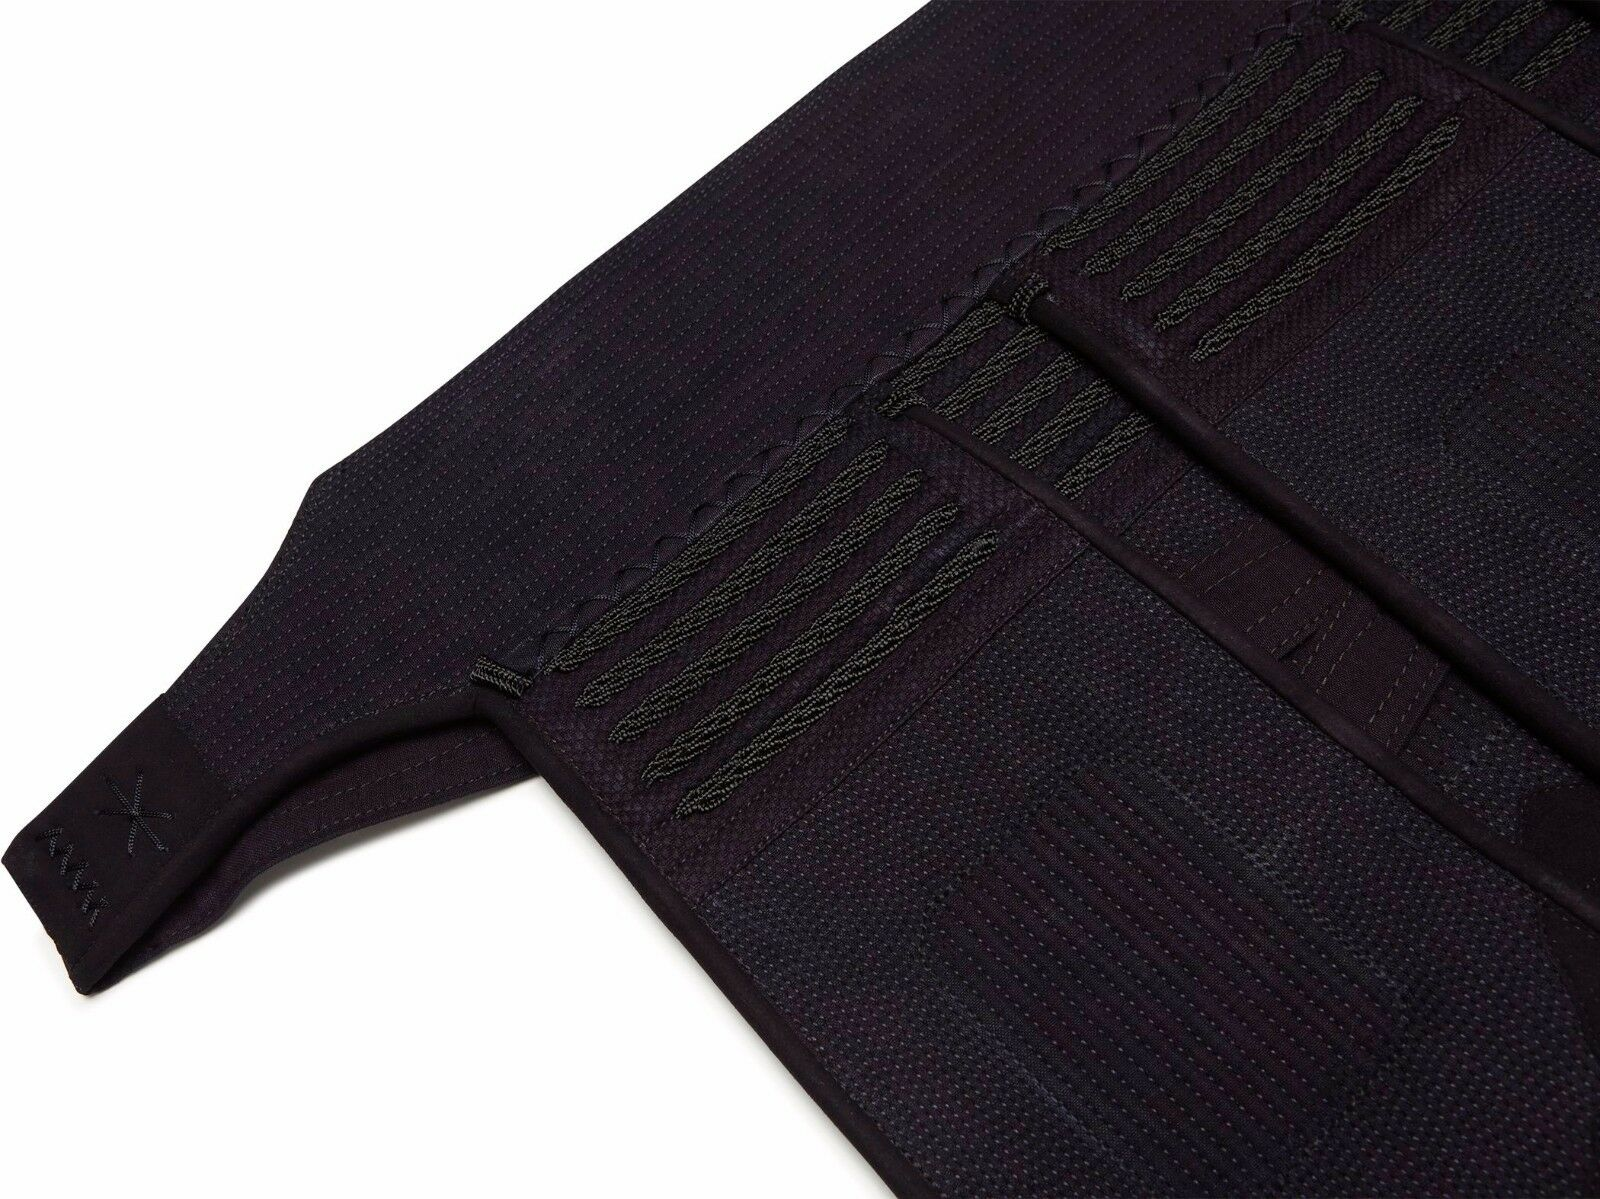 Tare 5 mm  7000, 7000, 7000, sofort lieferbar für Kendo Iaido Aikido    Outlet Online    Up-to-date-styling  69c6af